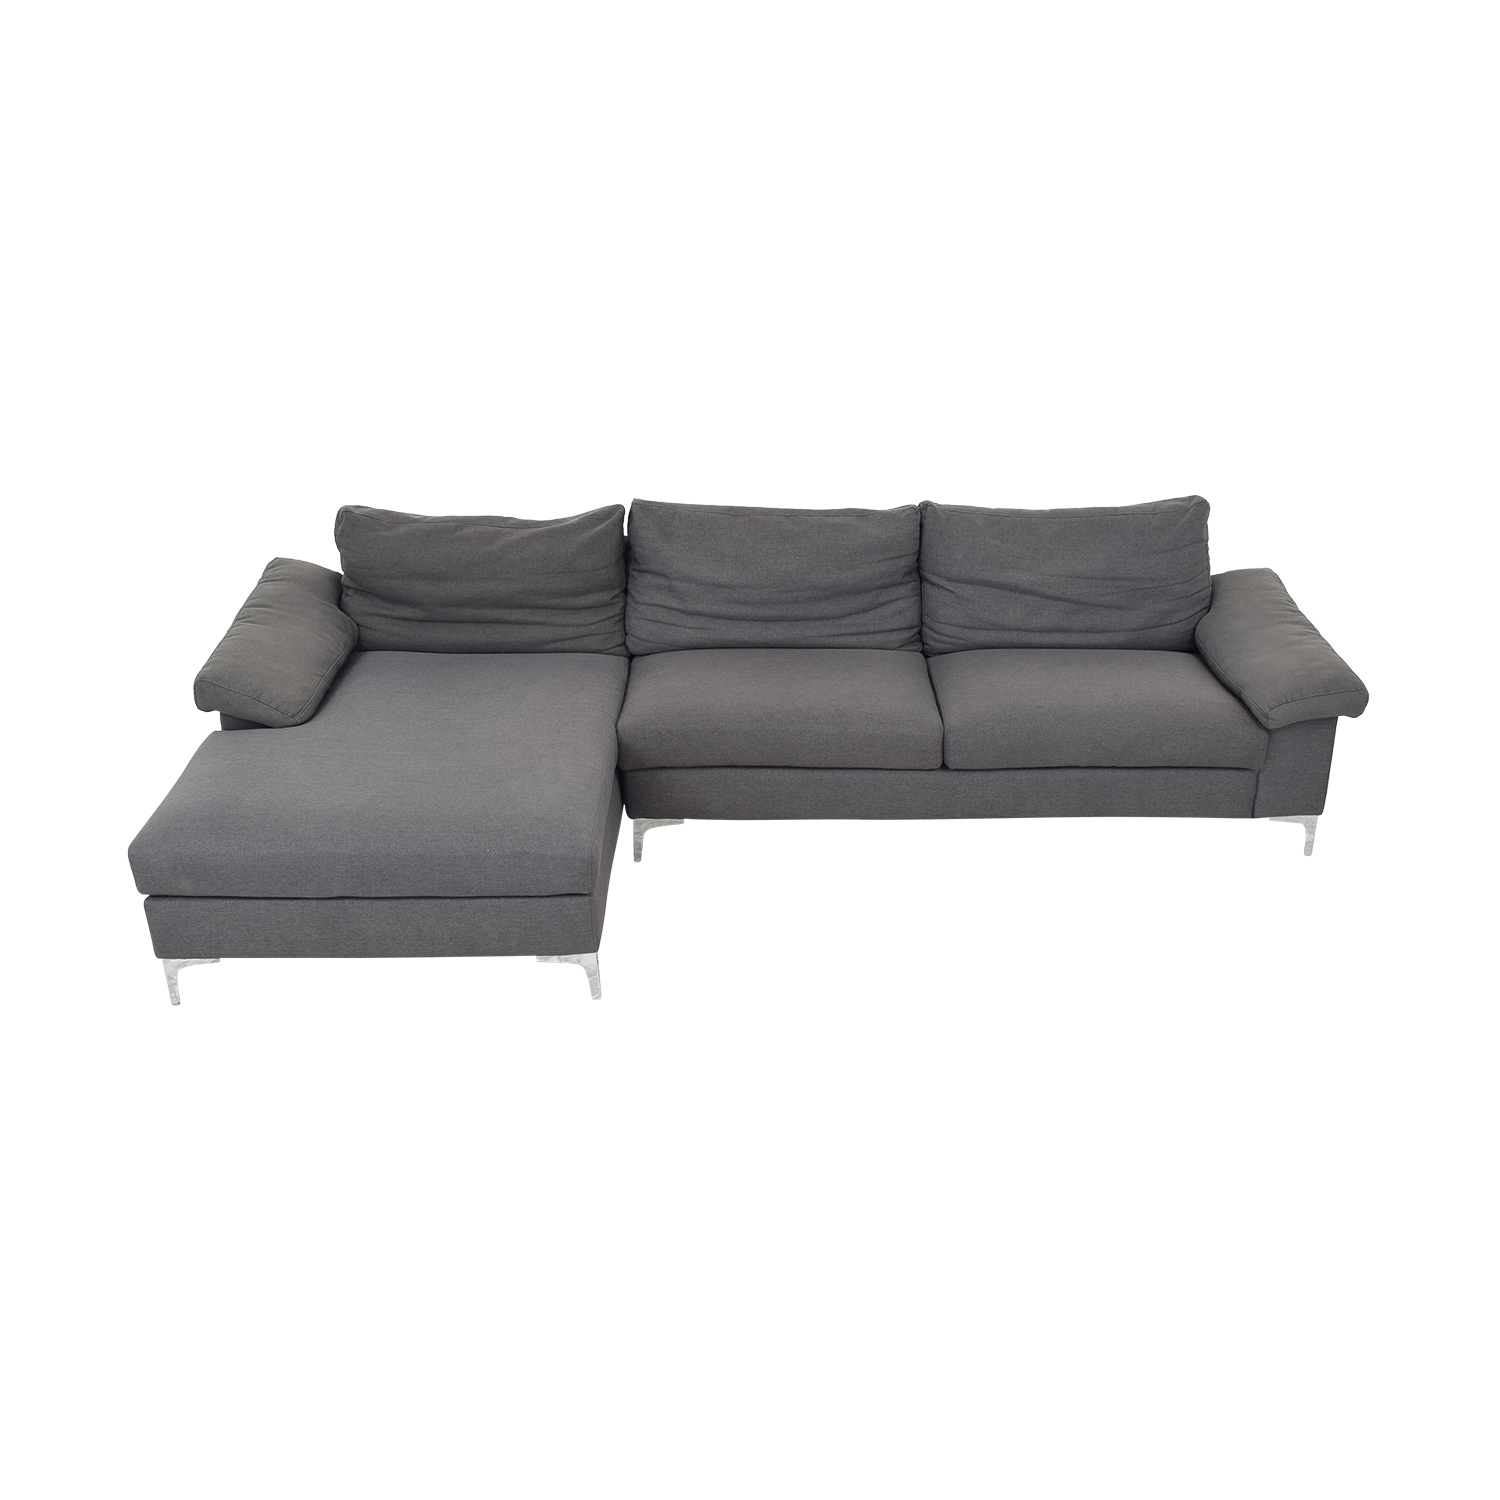 Ethan Allen Ethan Allen Sectional Sofa with Chaise ct